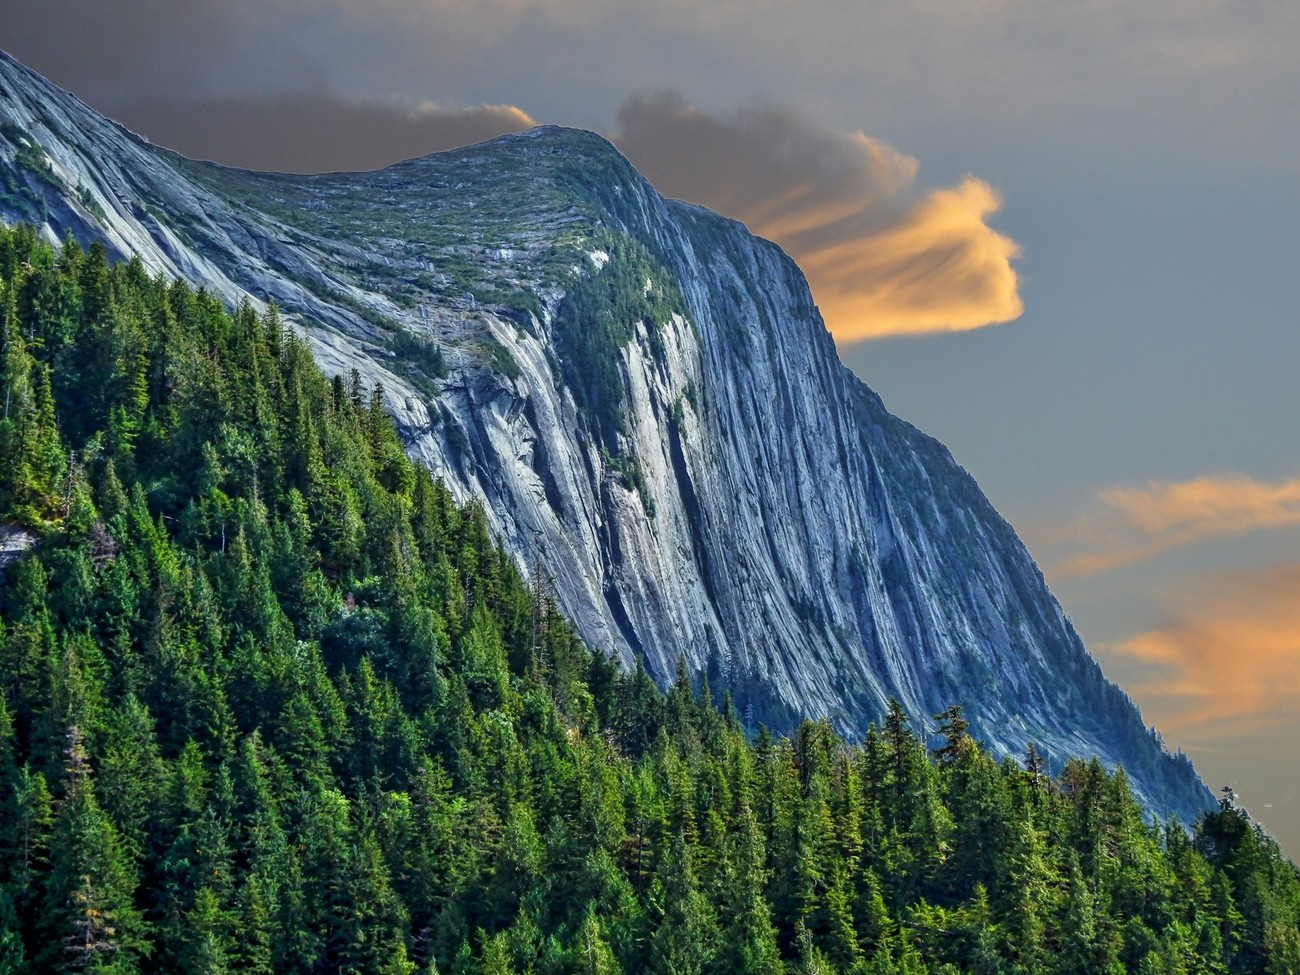 Misty Fiords National Monument in Ketchikan, Alaska.  Amazing granite cliffs and waterfalls offer great views of this wilderness.